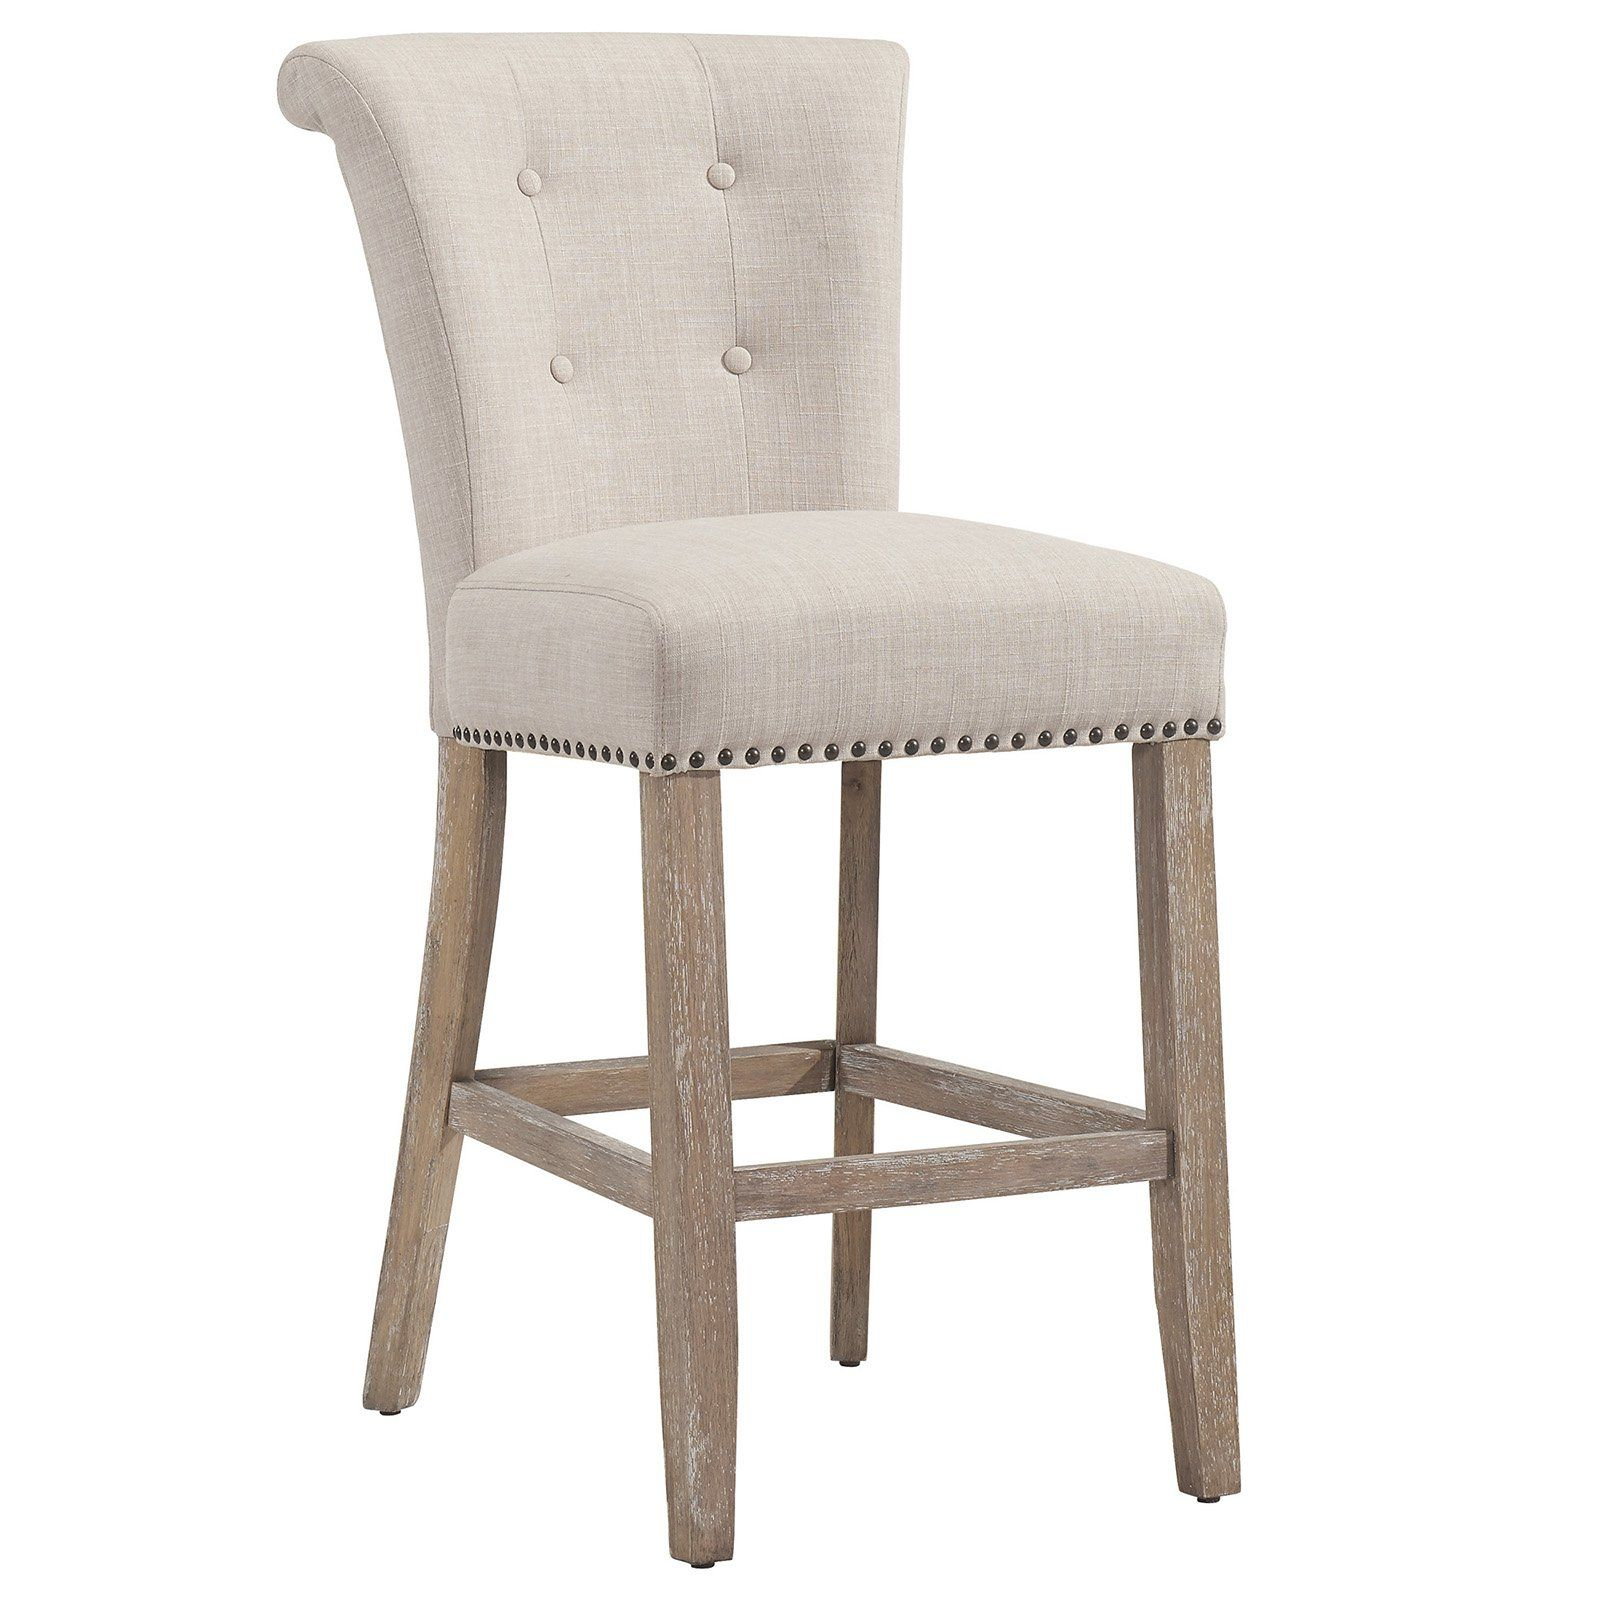 Nspire Selma 26 In Upholstered Counter Stool Set Of 2 Counter Stools Bar Stools Bar Stools With Backs